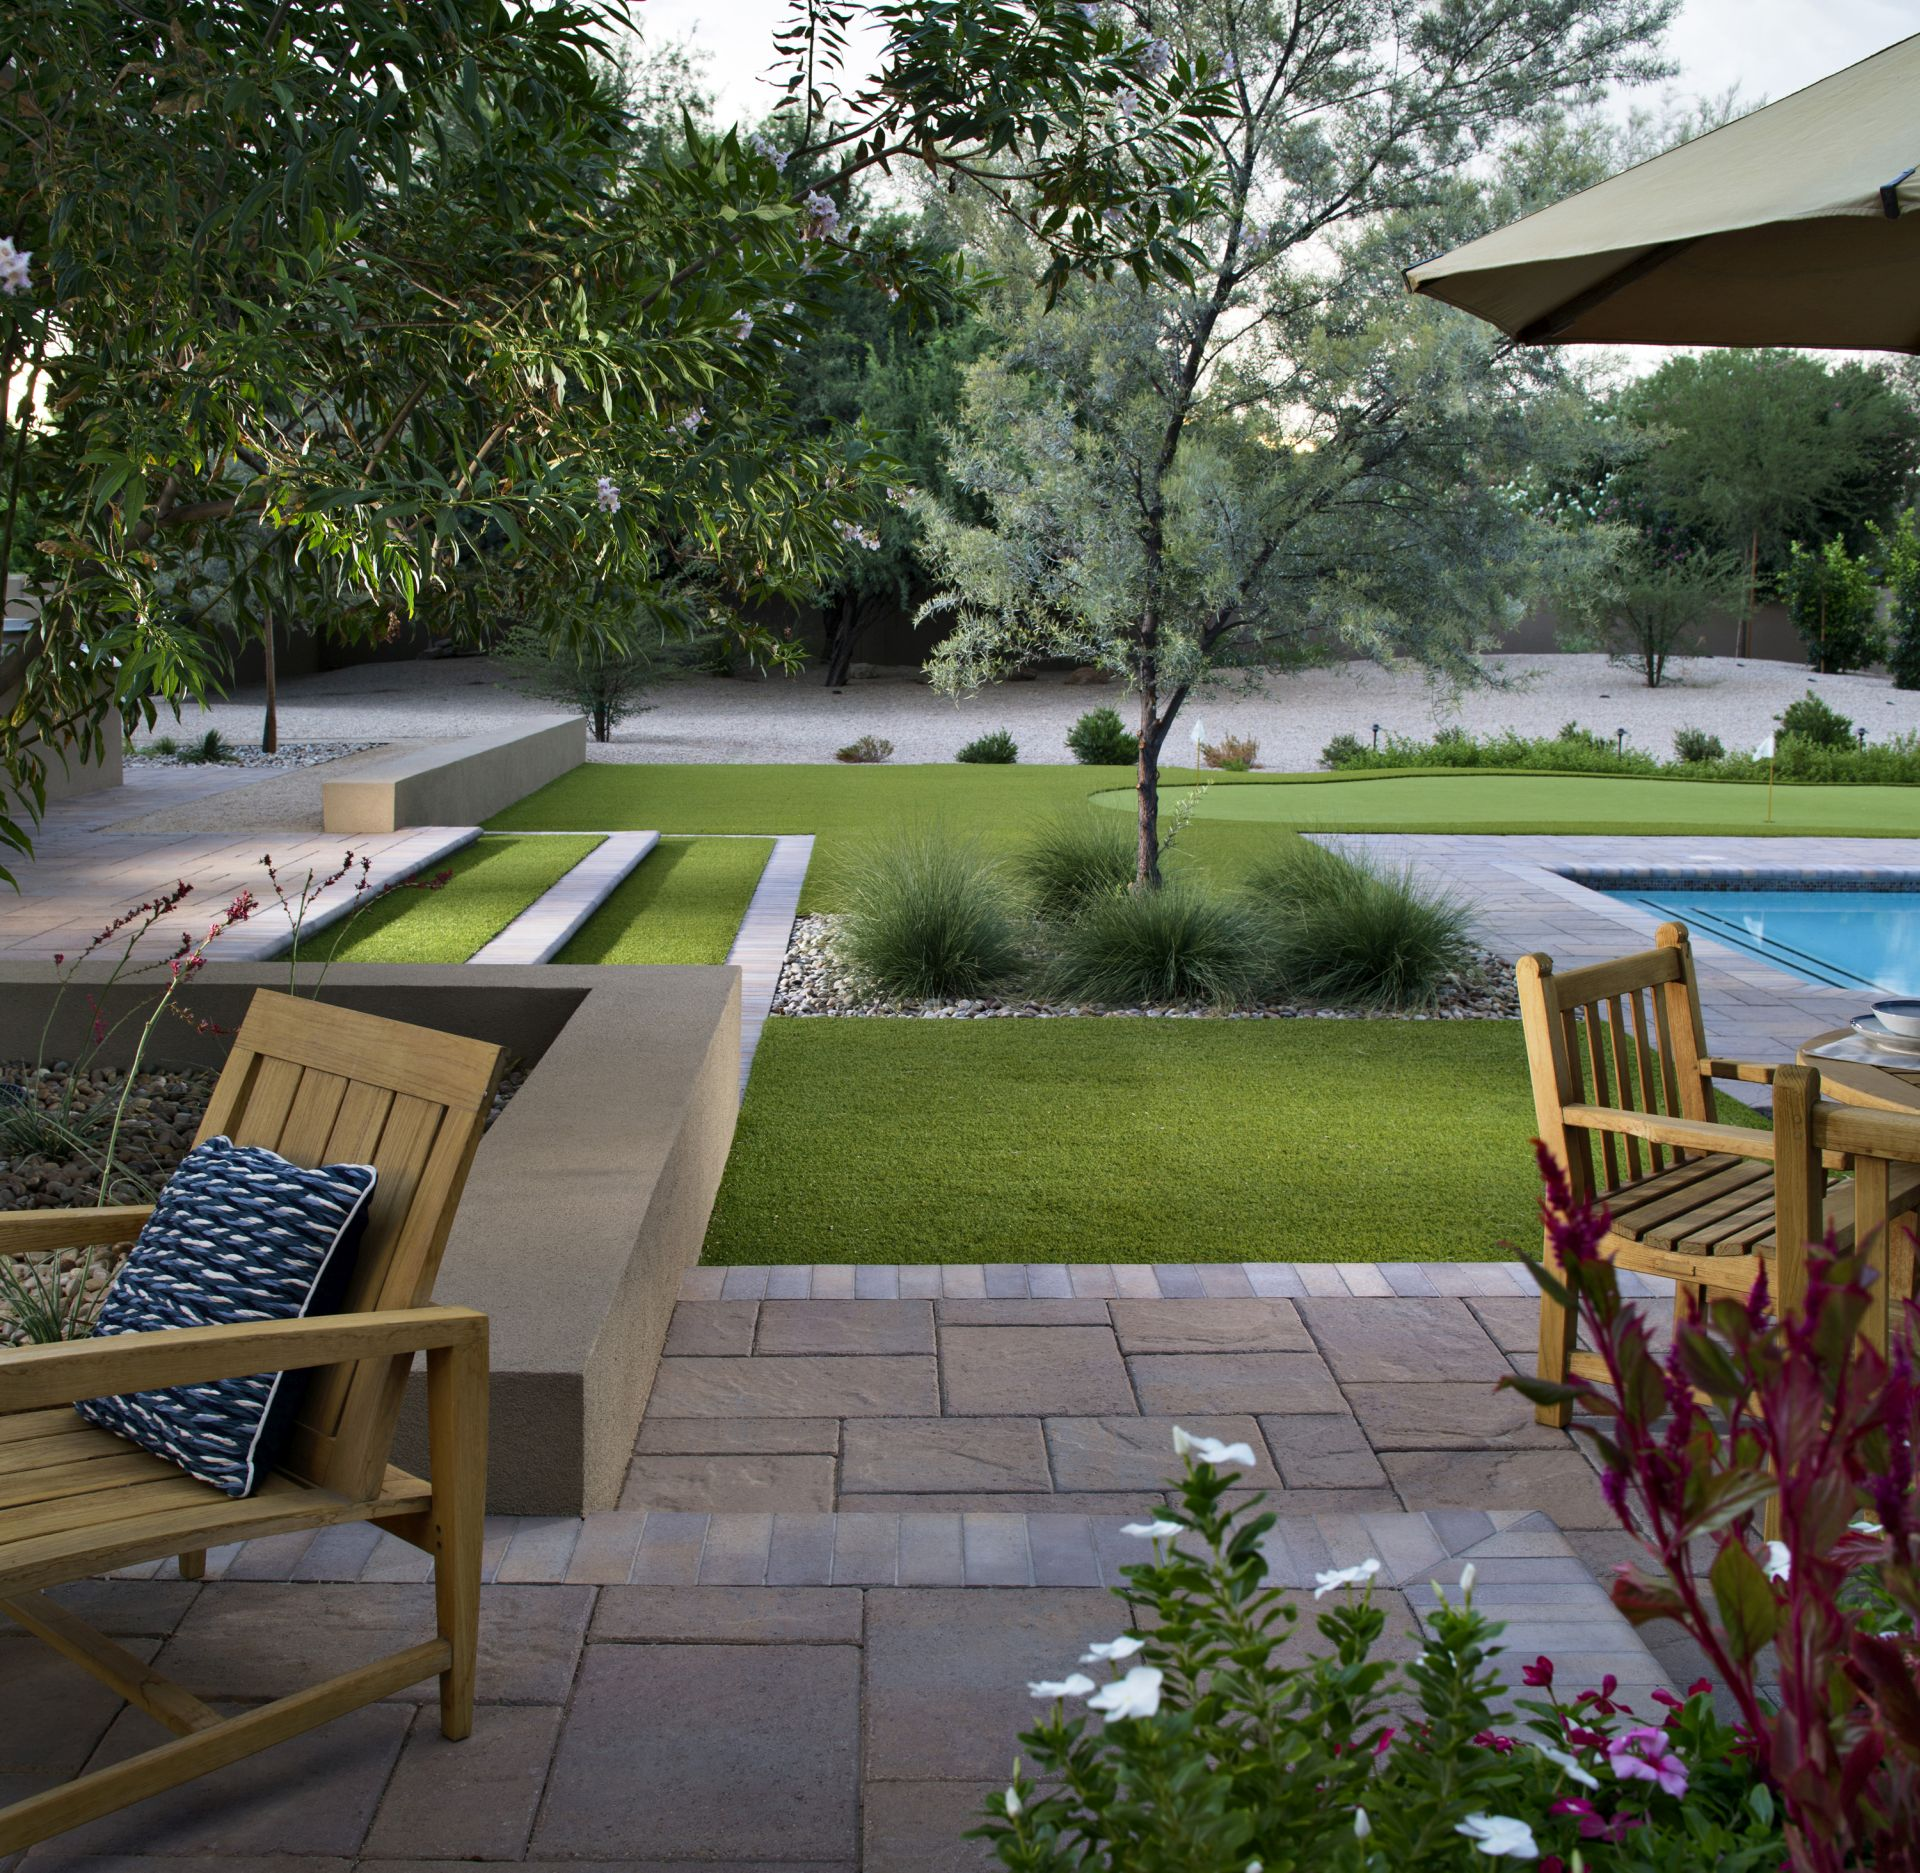 Where Homeowners Are Using Artificial Grass & Why